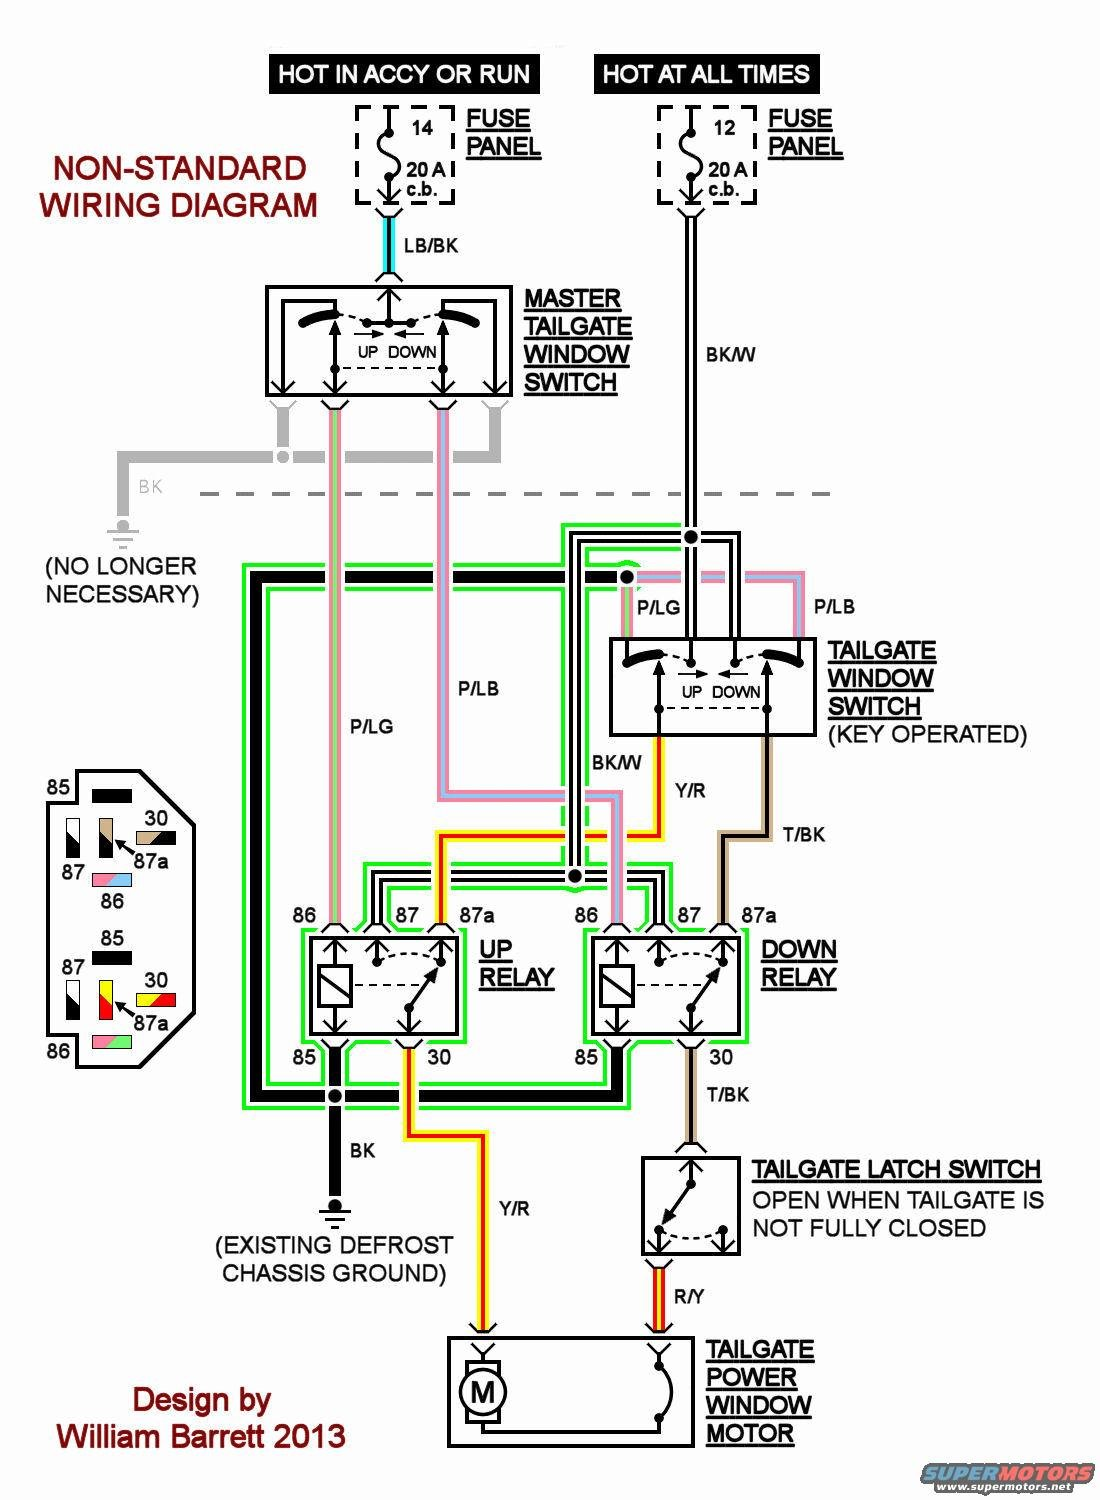 1991 Ford Bronco Rear Window Wiring Diagram For 1988 Tailgate Rewire Works 100x Better Page 2 Forum Rh Fullsizebronco Com 1993 Starter